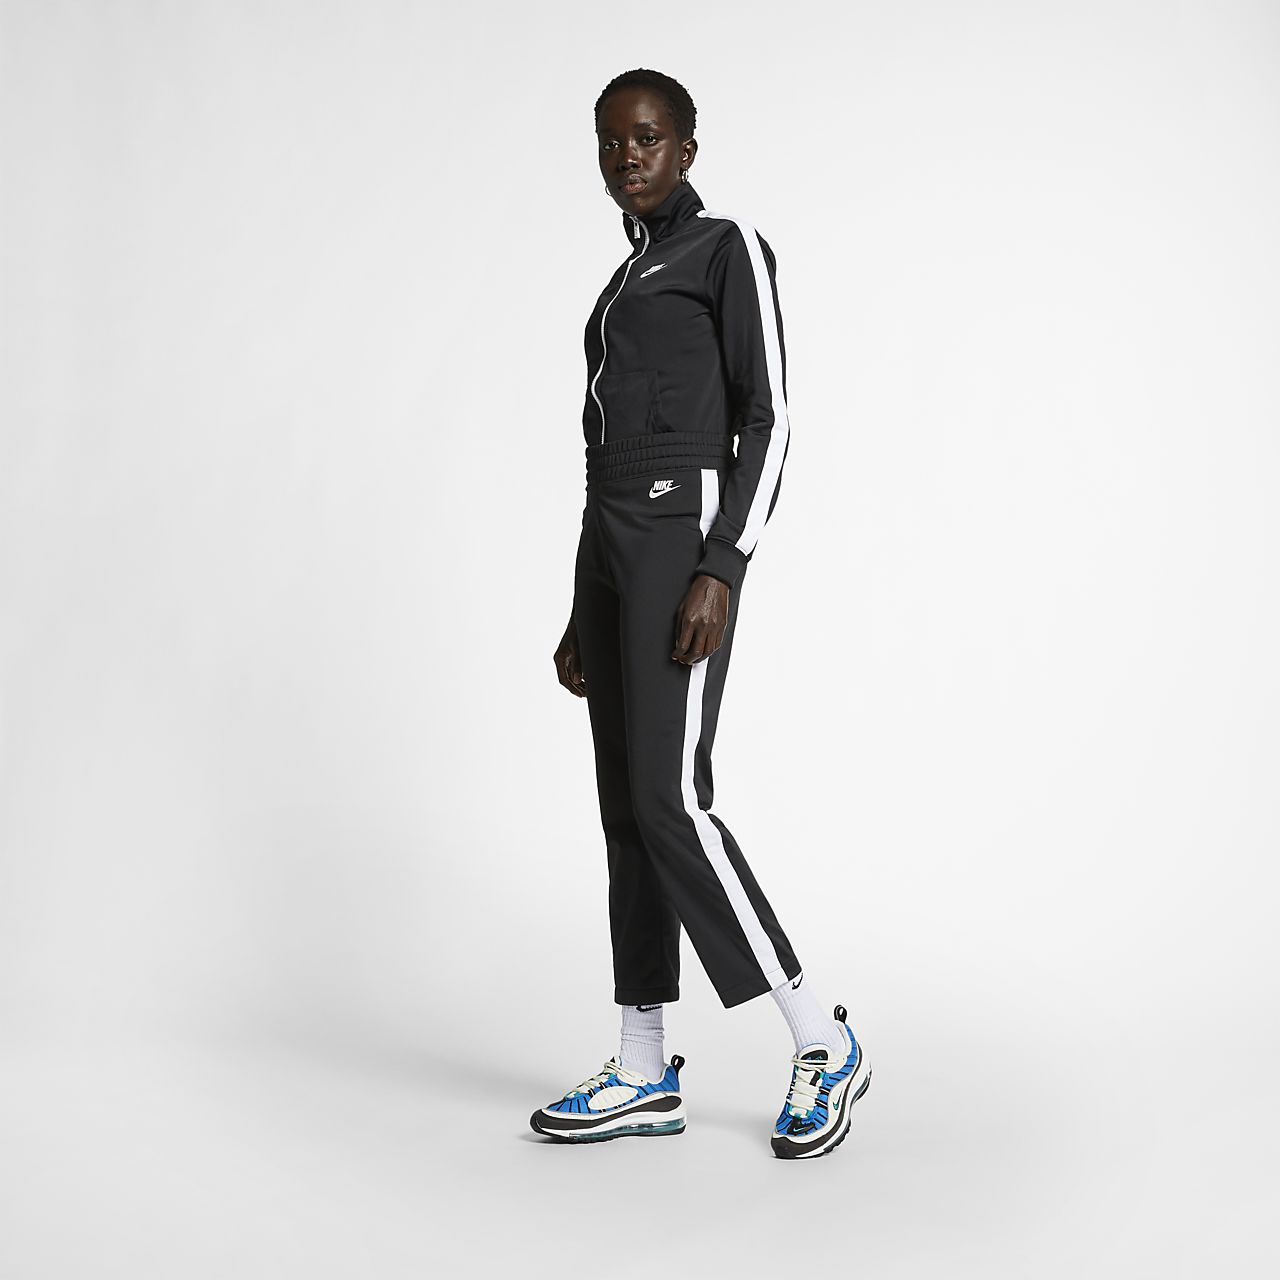 official photos 4474a 48847 ... Low Resolution Nike Sportswear Womens Track Suit Nike Sportswear Womens  Track Suit . ...